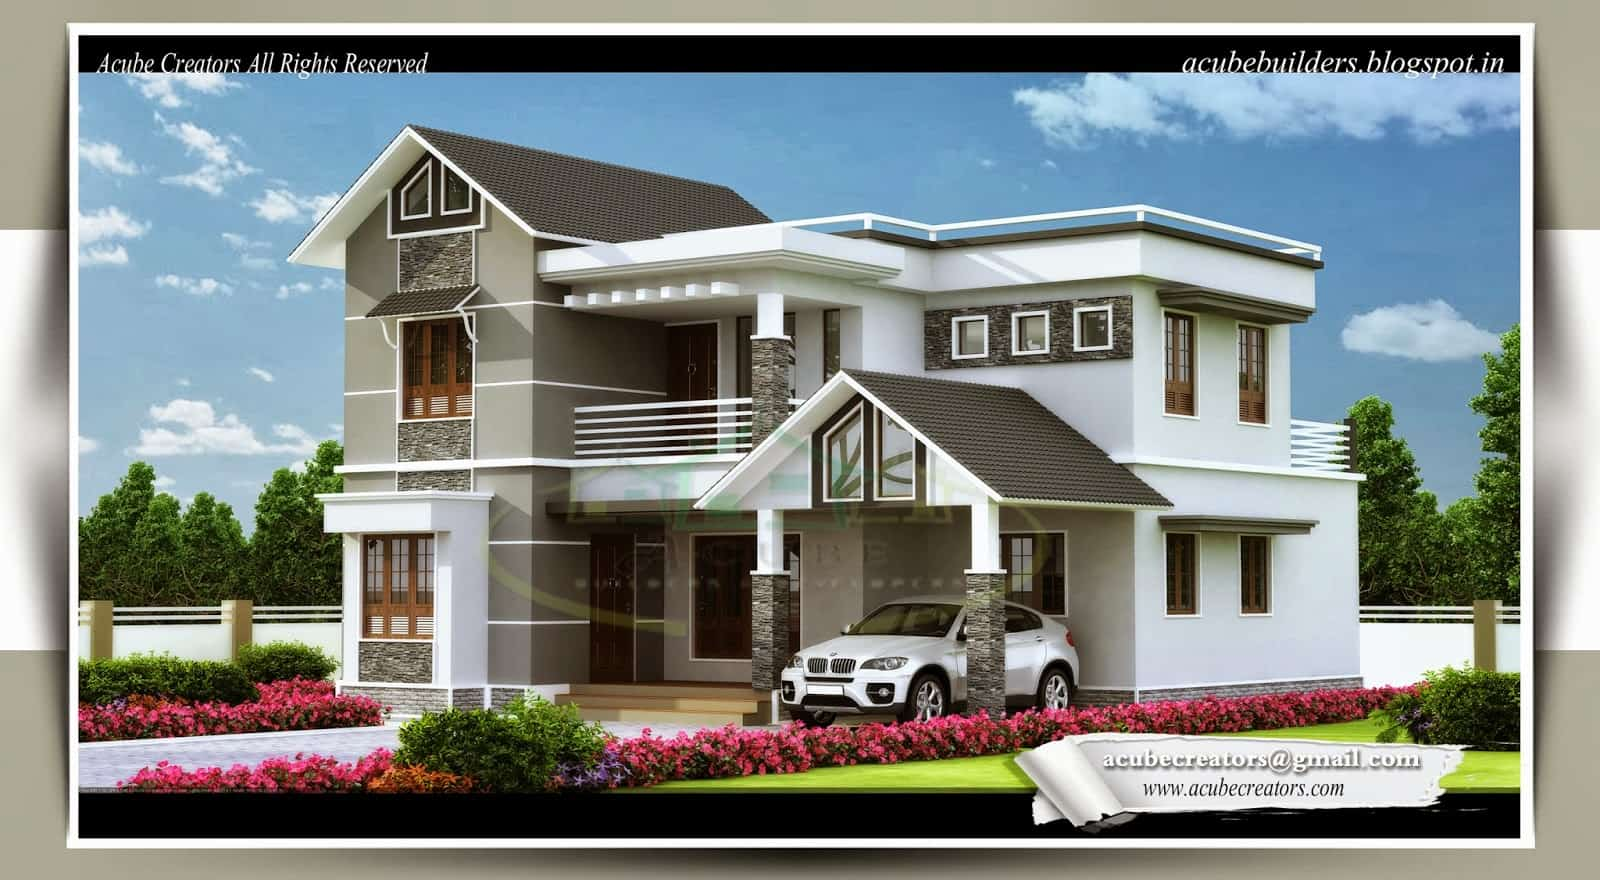 Kerala home design photos House design images